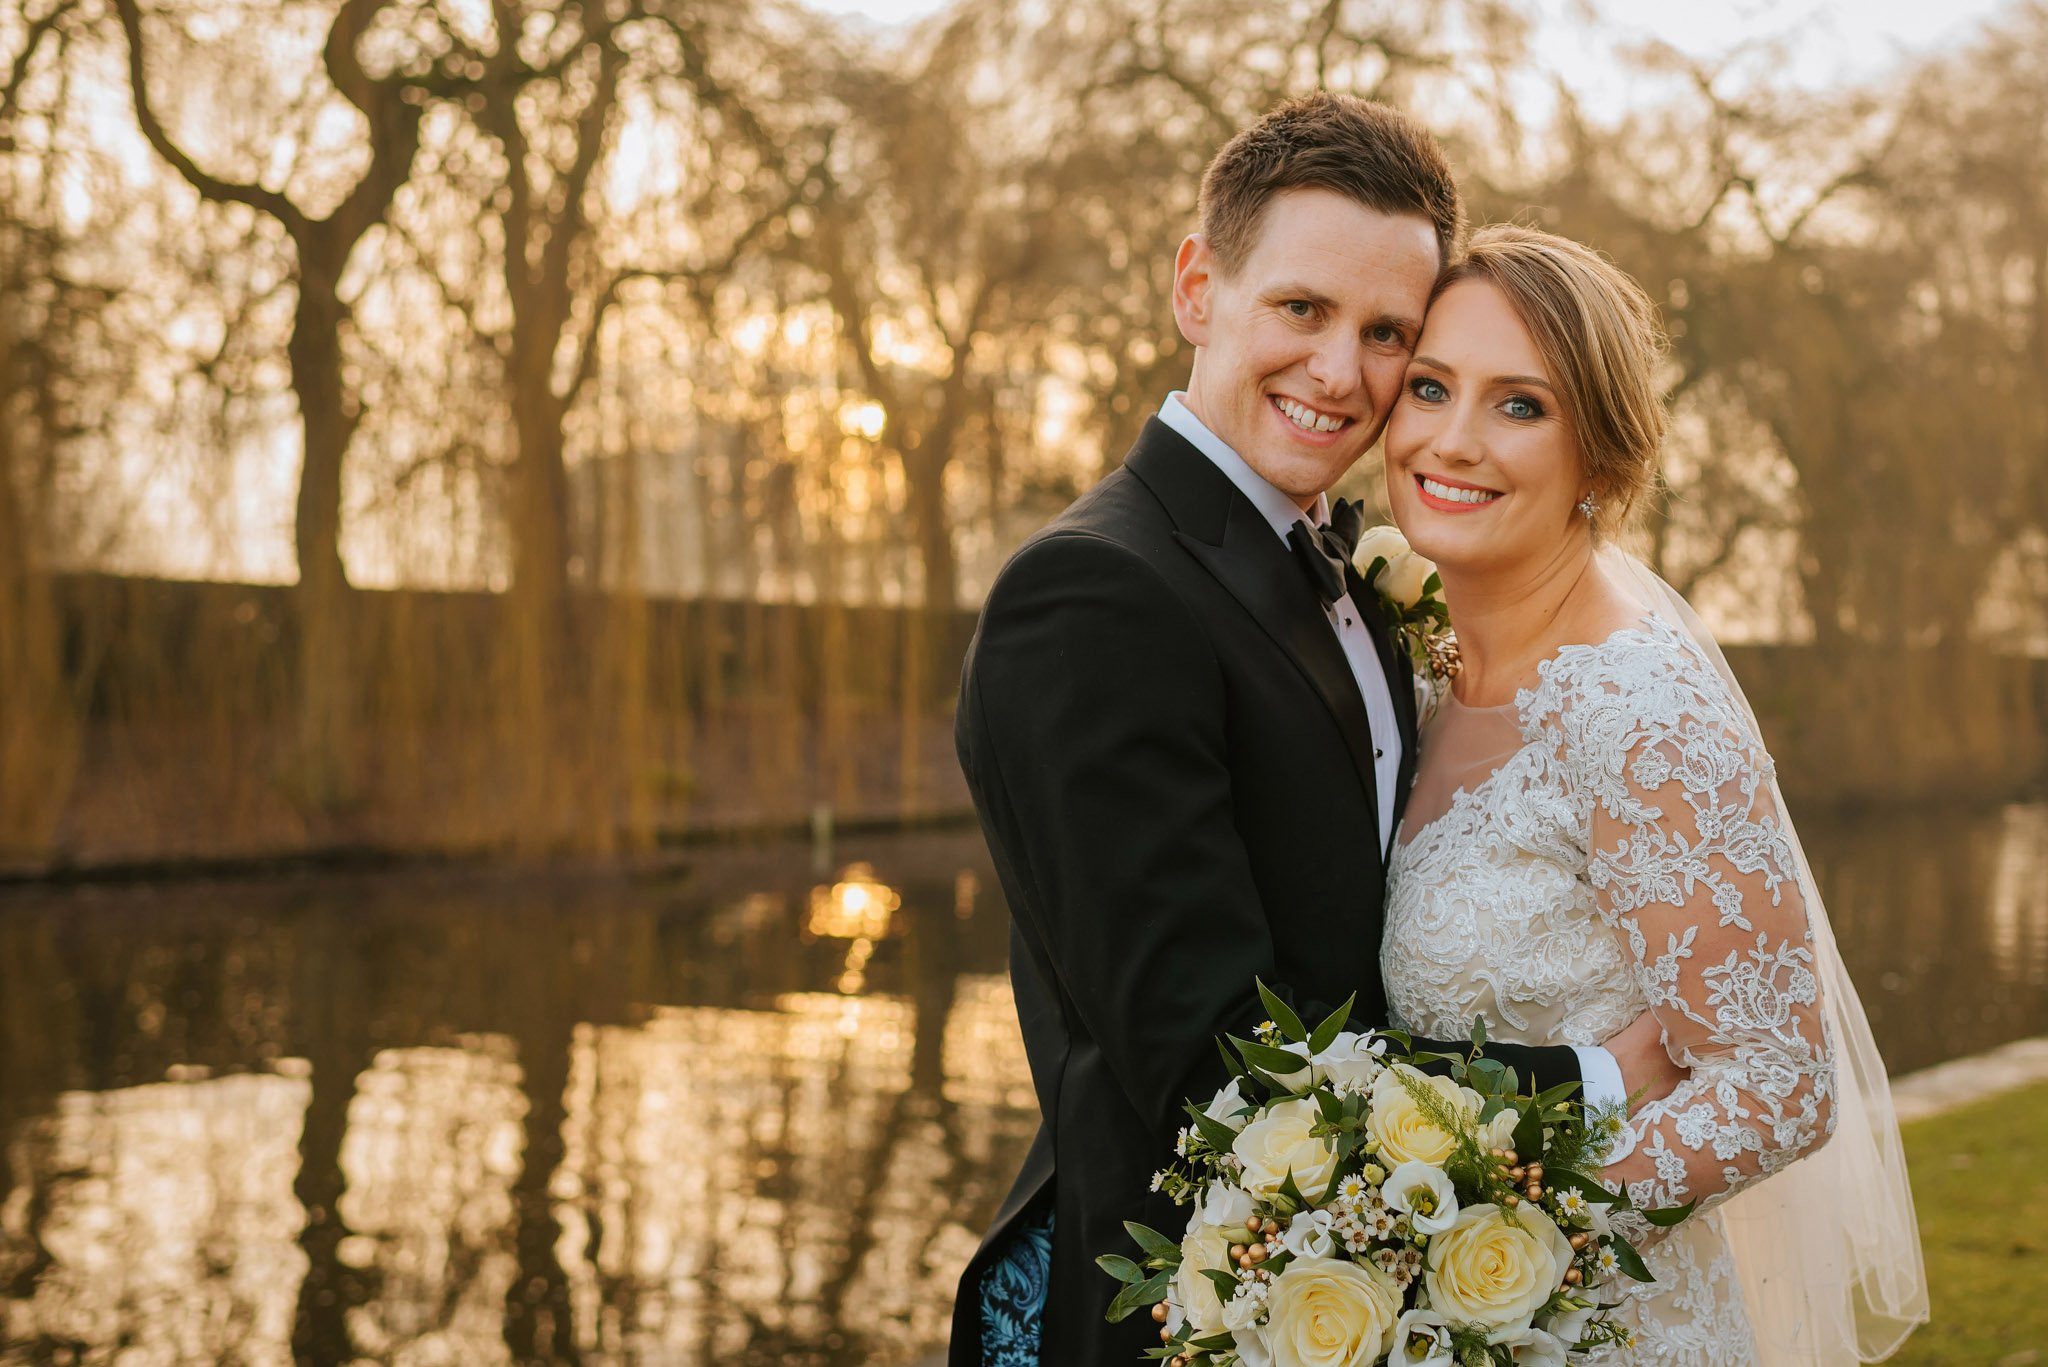 coombe abbey wedding coventry 53 - Coombe Abbey wedding in Coventry, Warwickshire - Sam + Matt